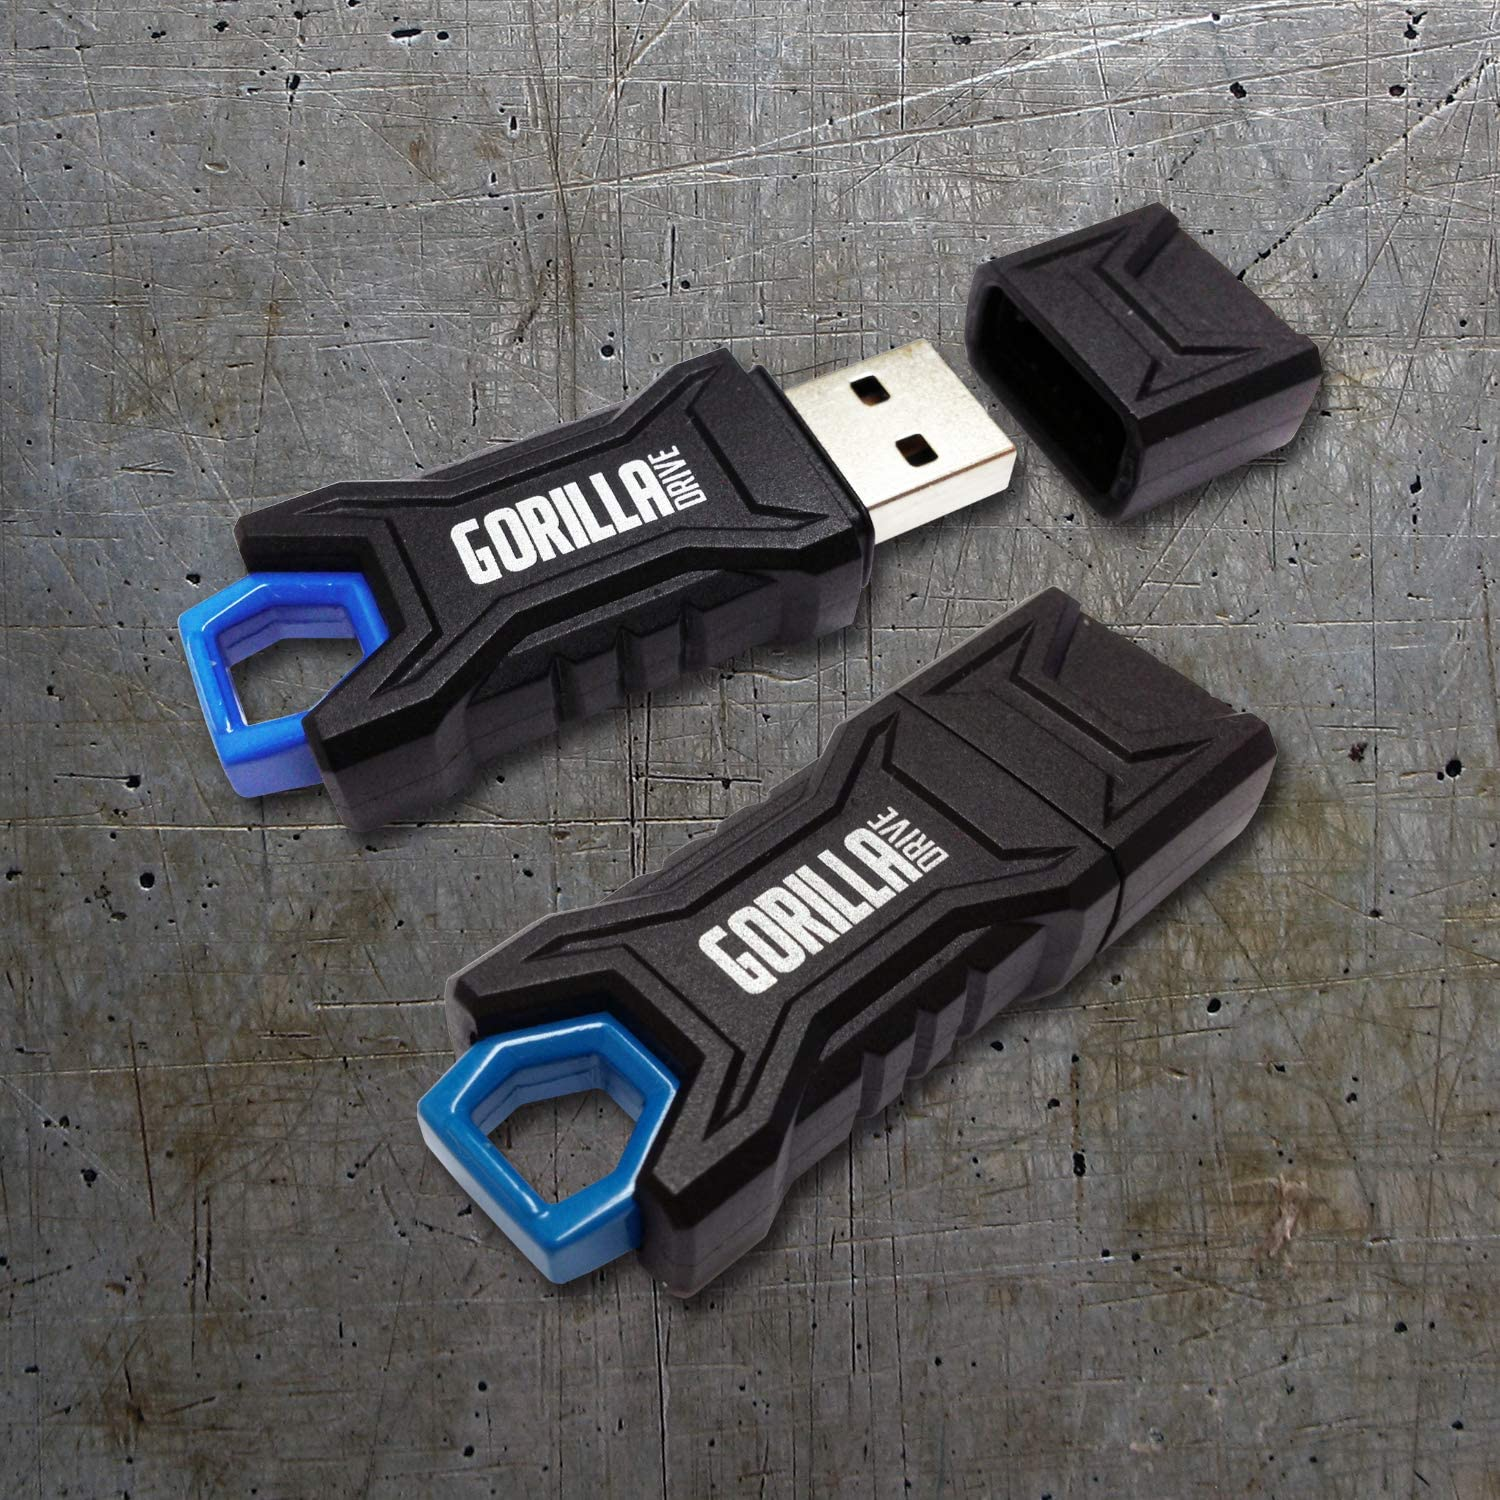 GorillaDrive Ruggedized USB Flash Drive